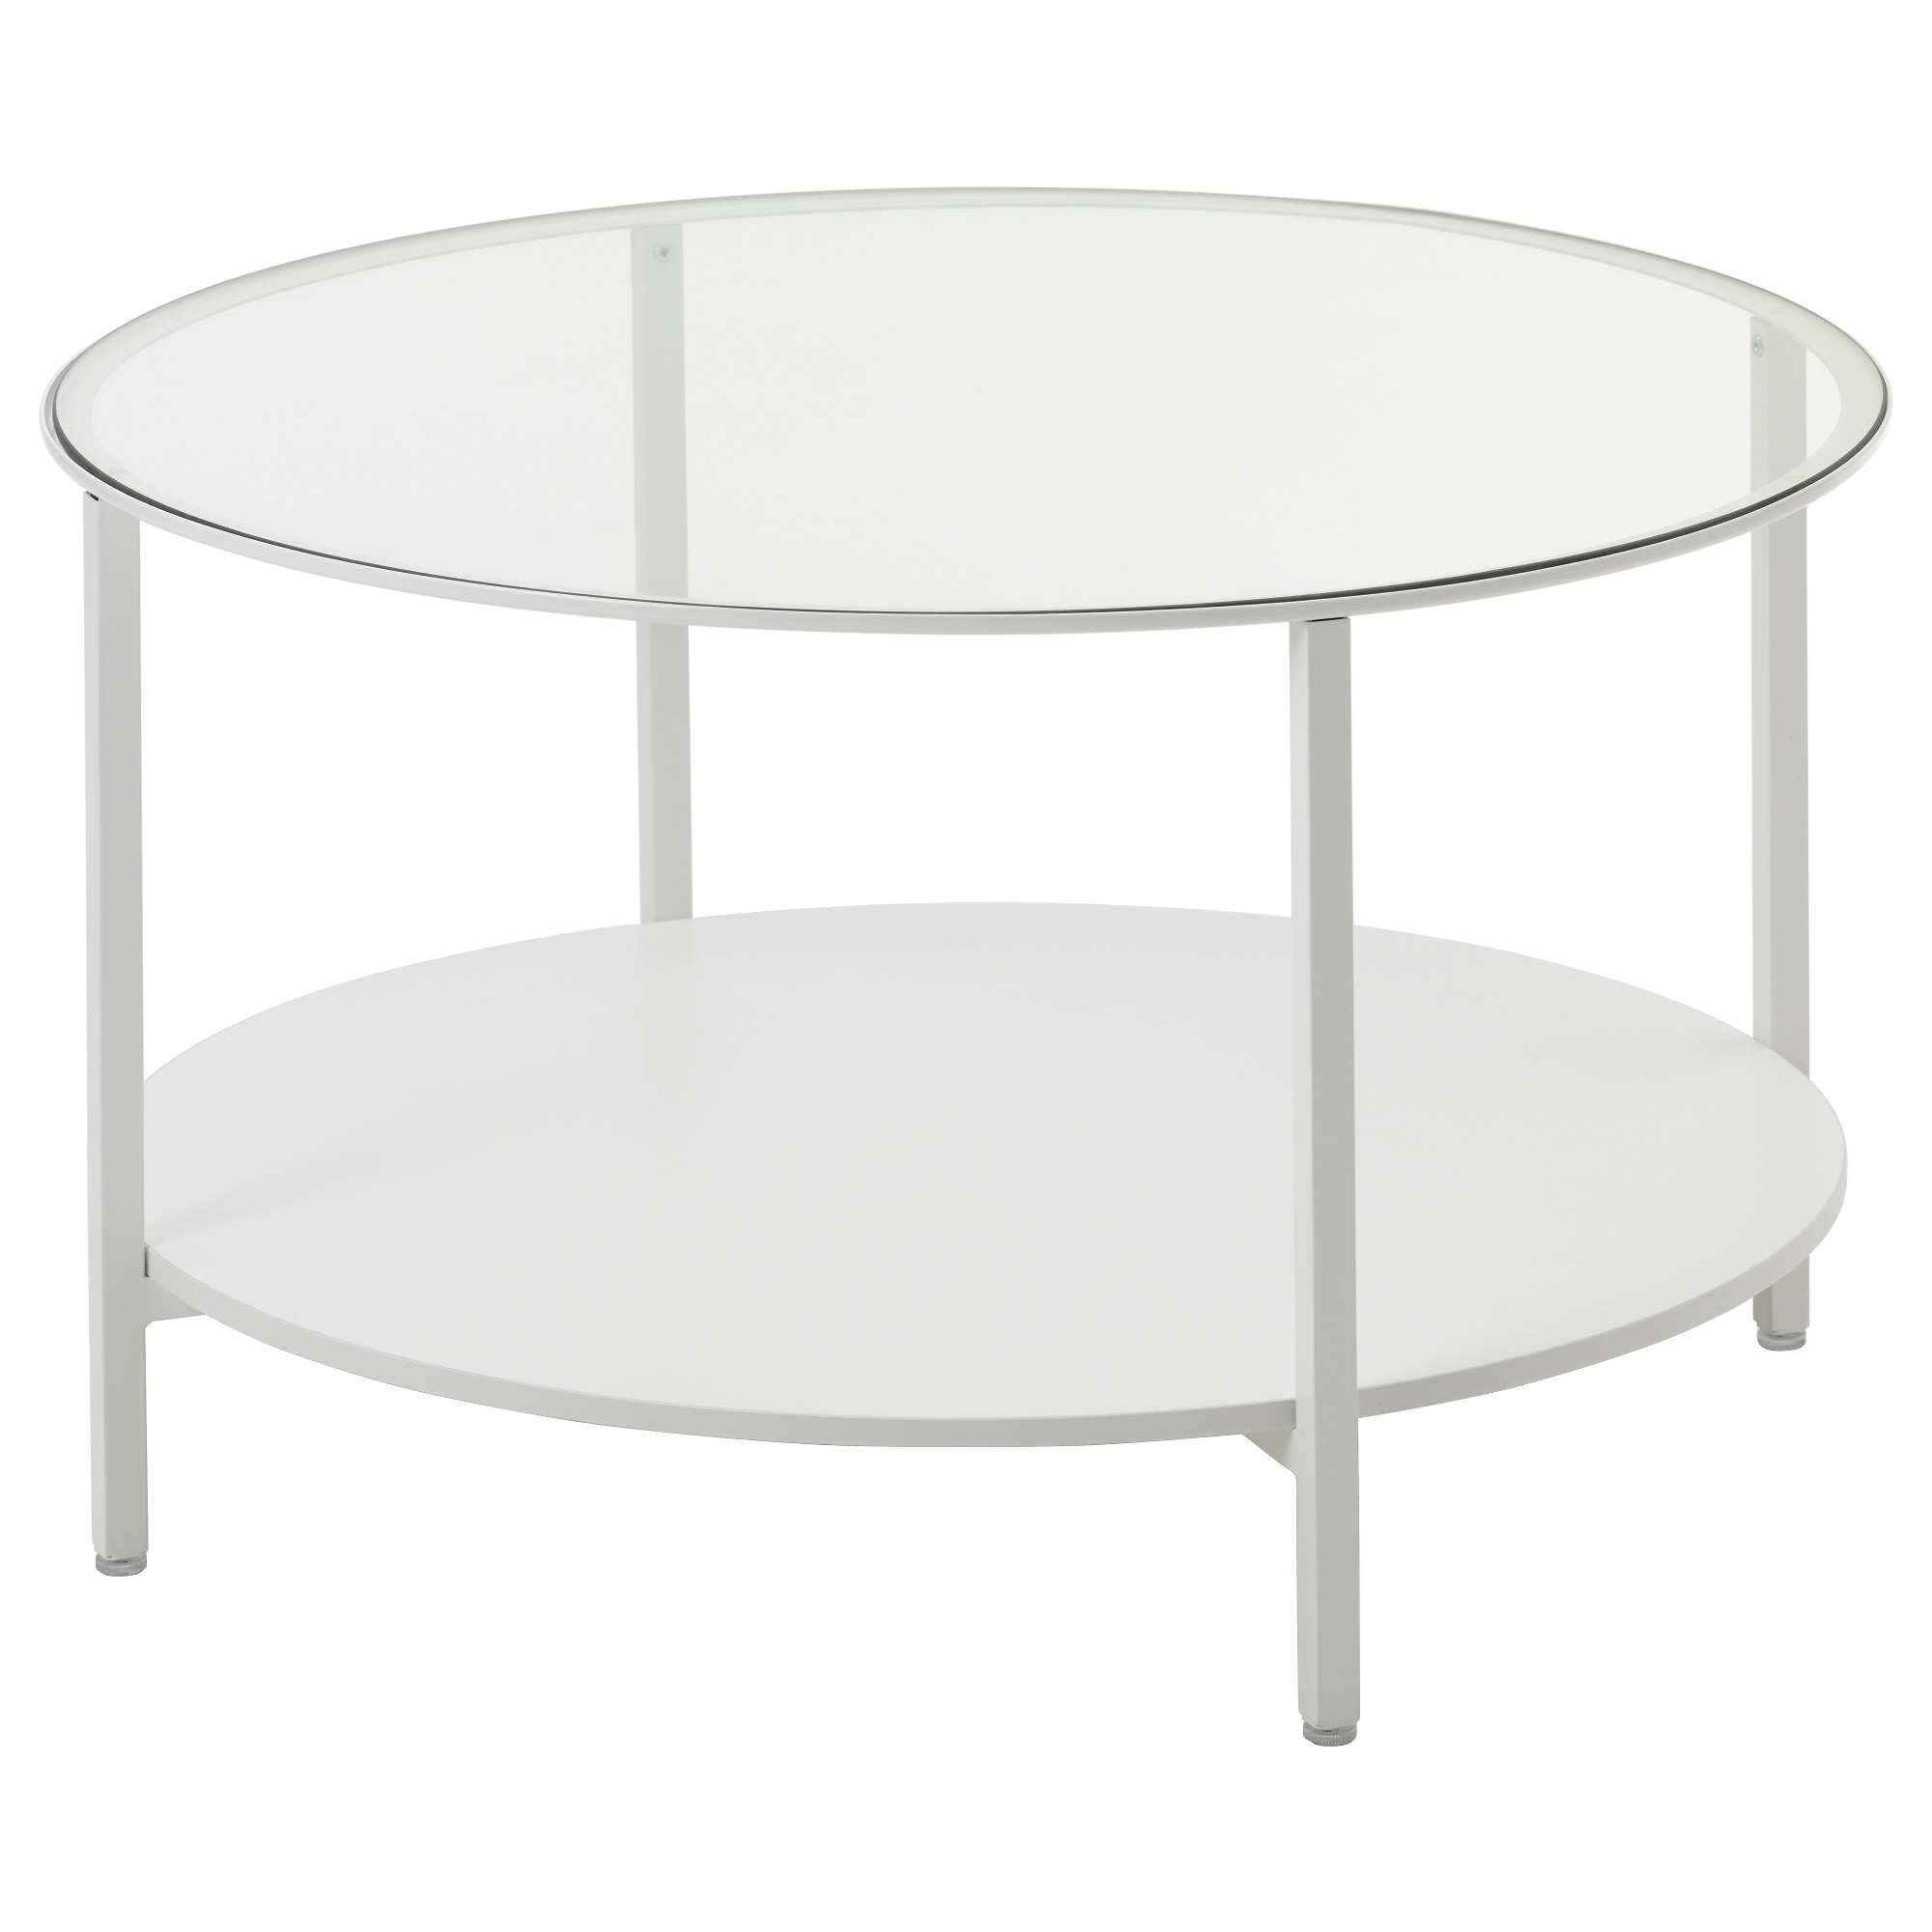 VITTSJÖ Coffee Table   White/glass   IKEA